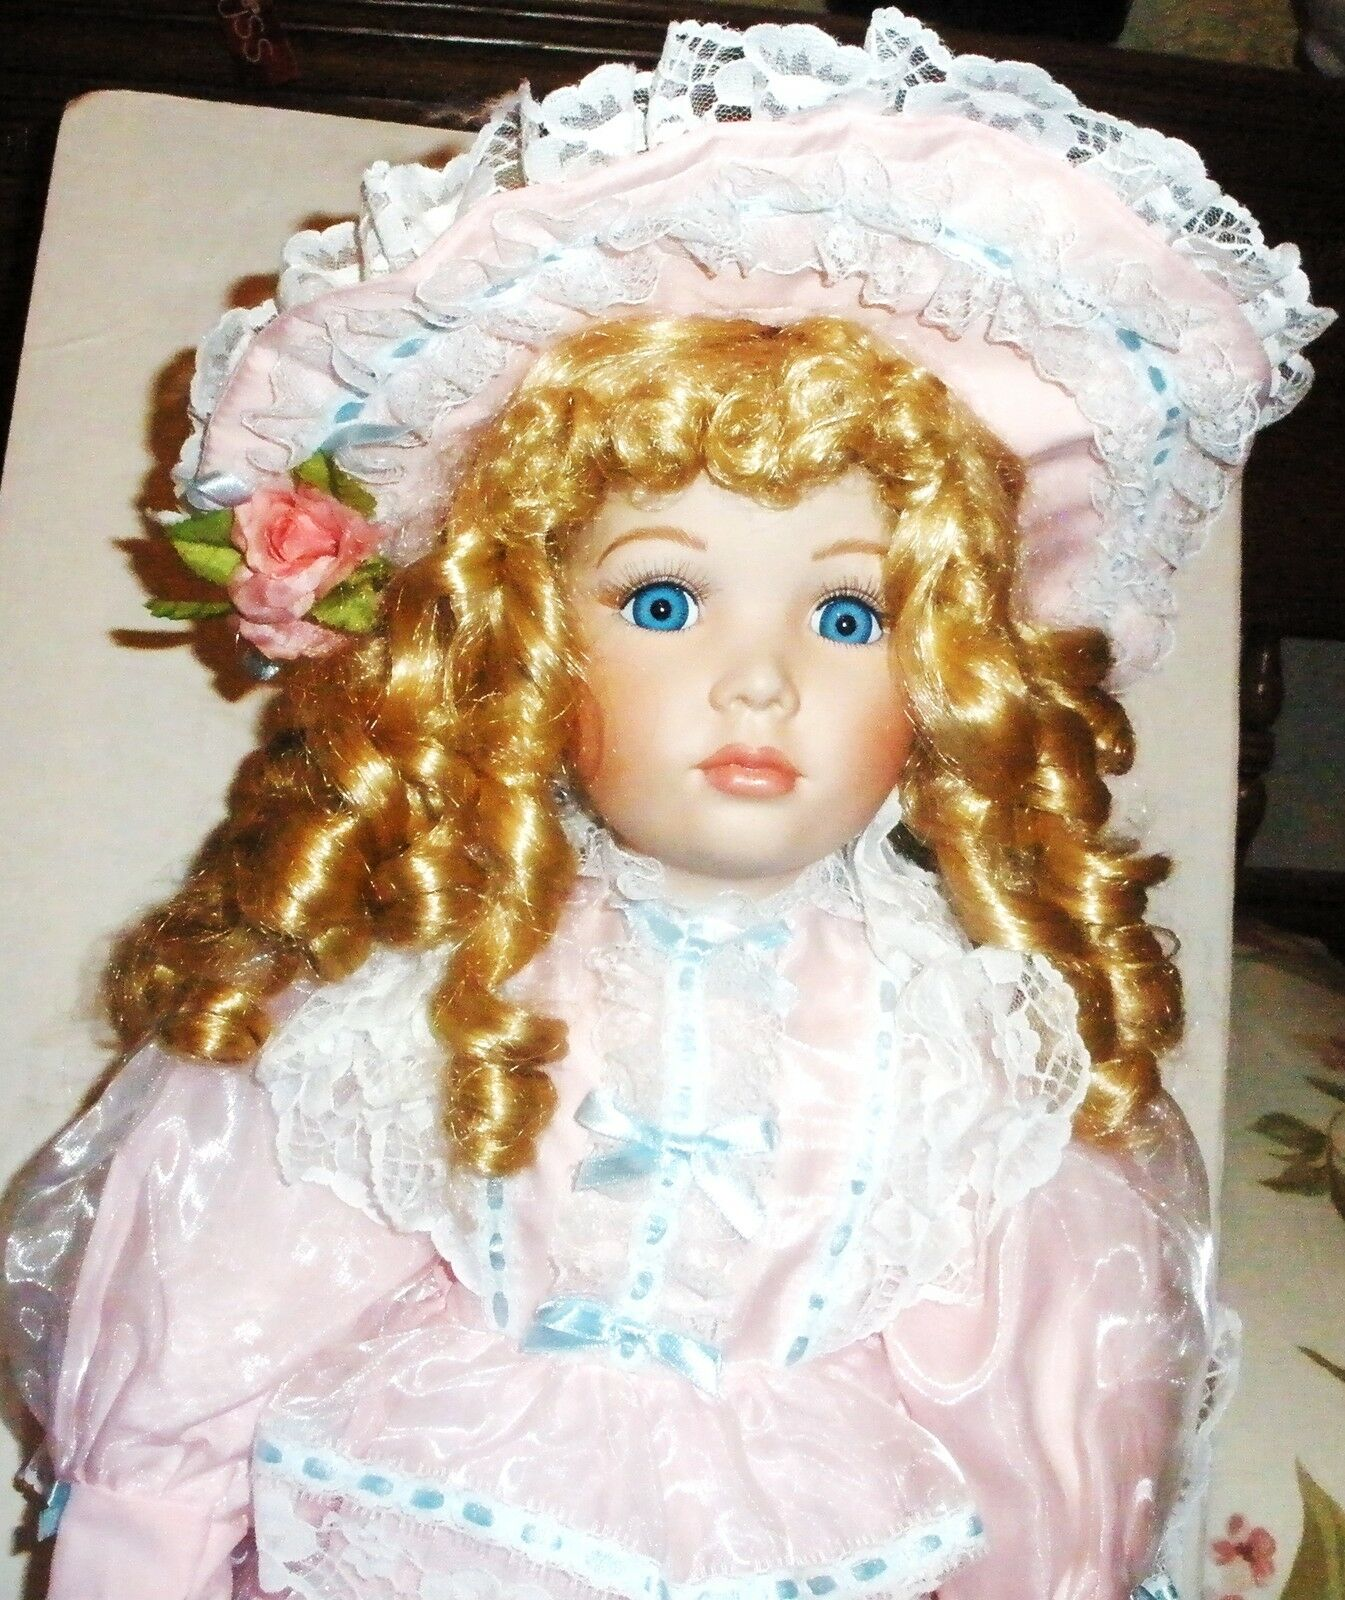 Ingrid s Dolls and Collectibles